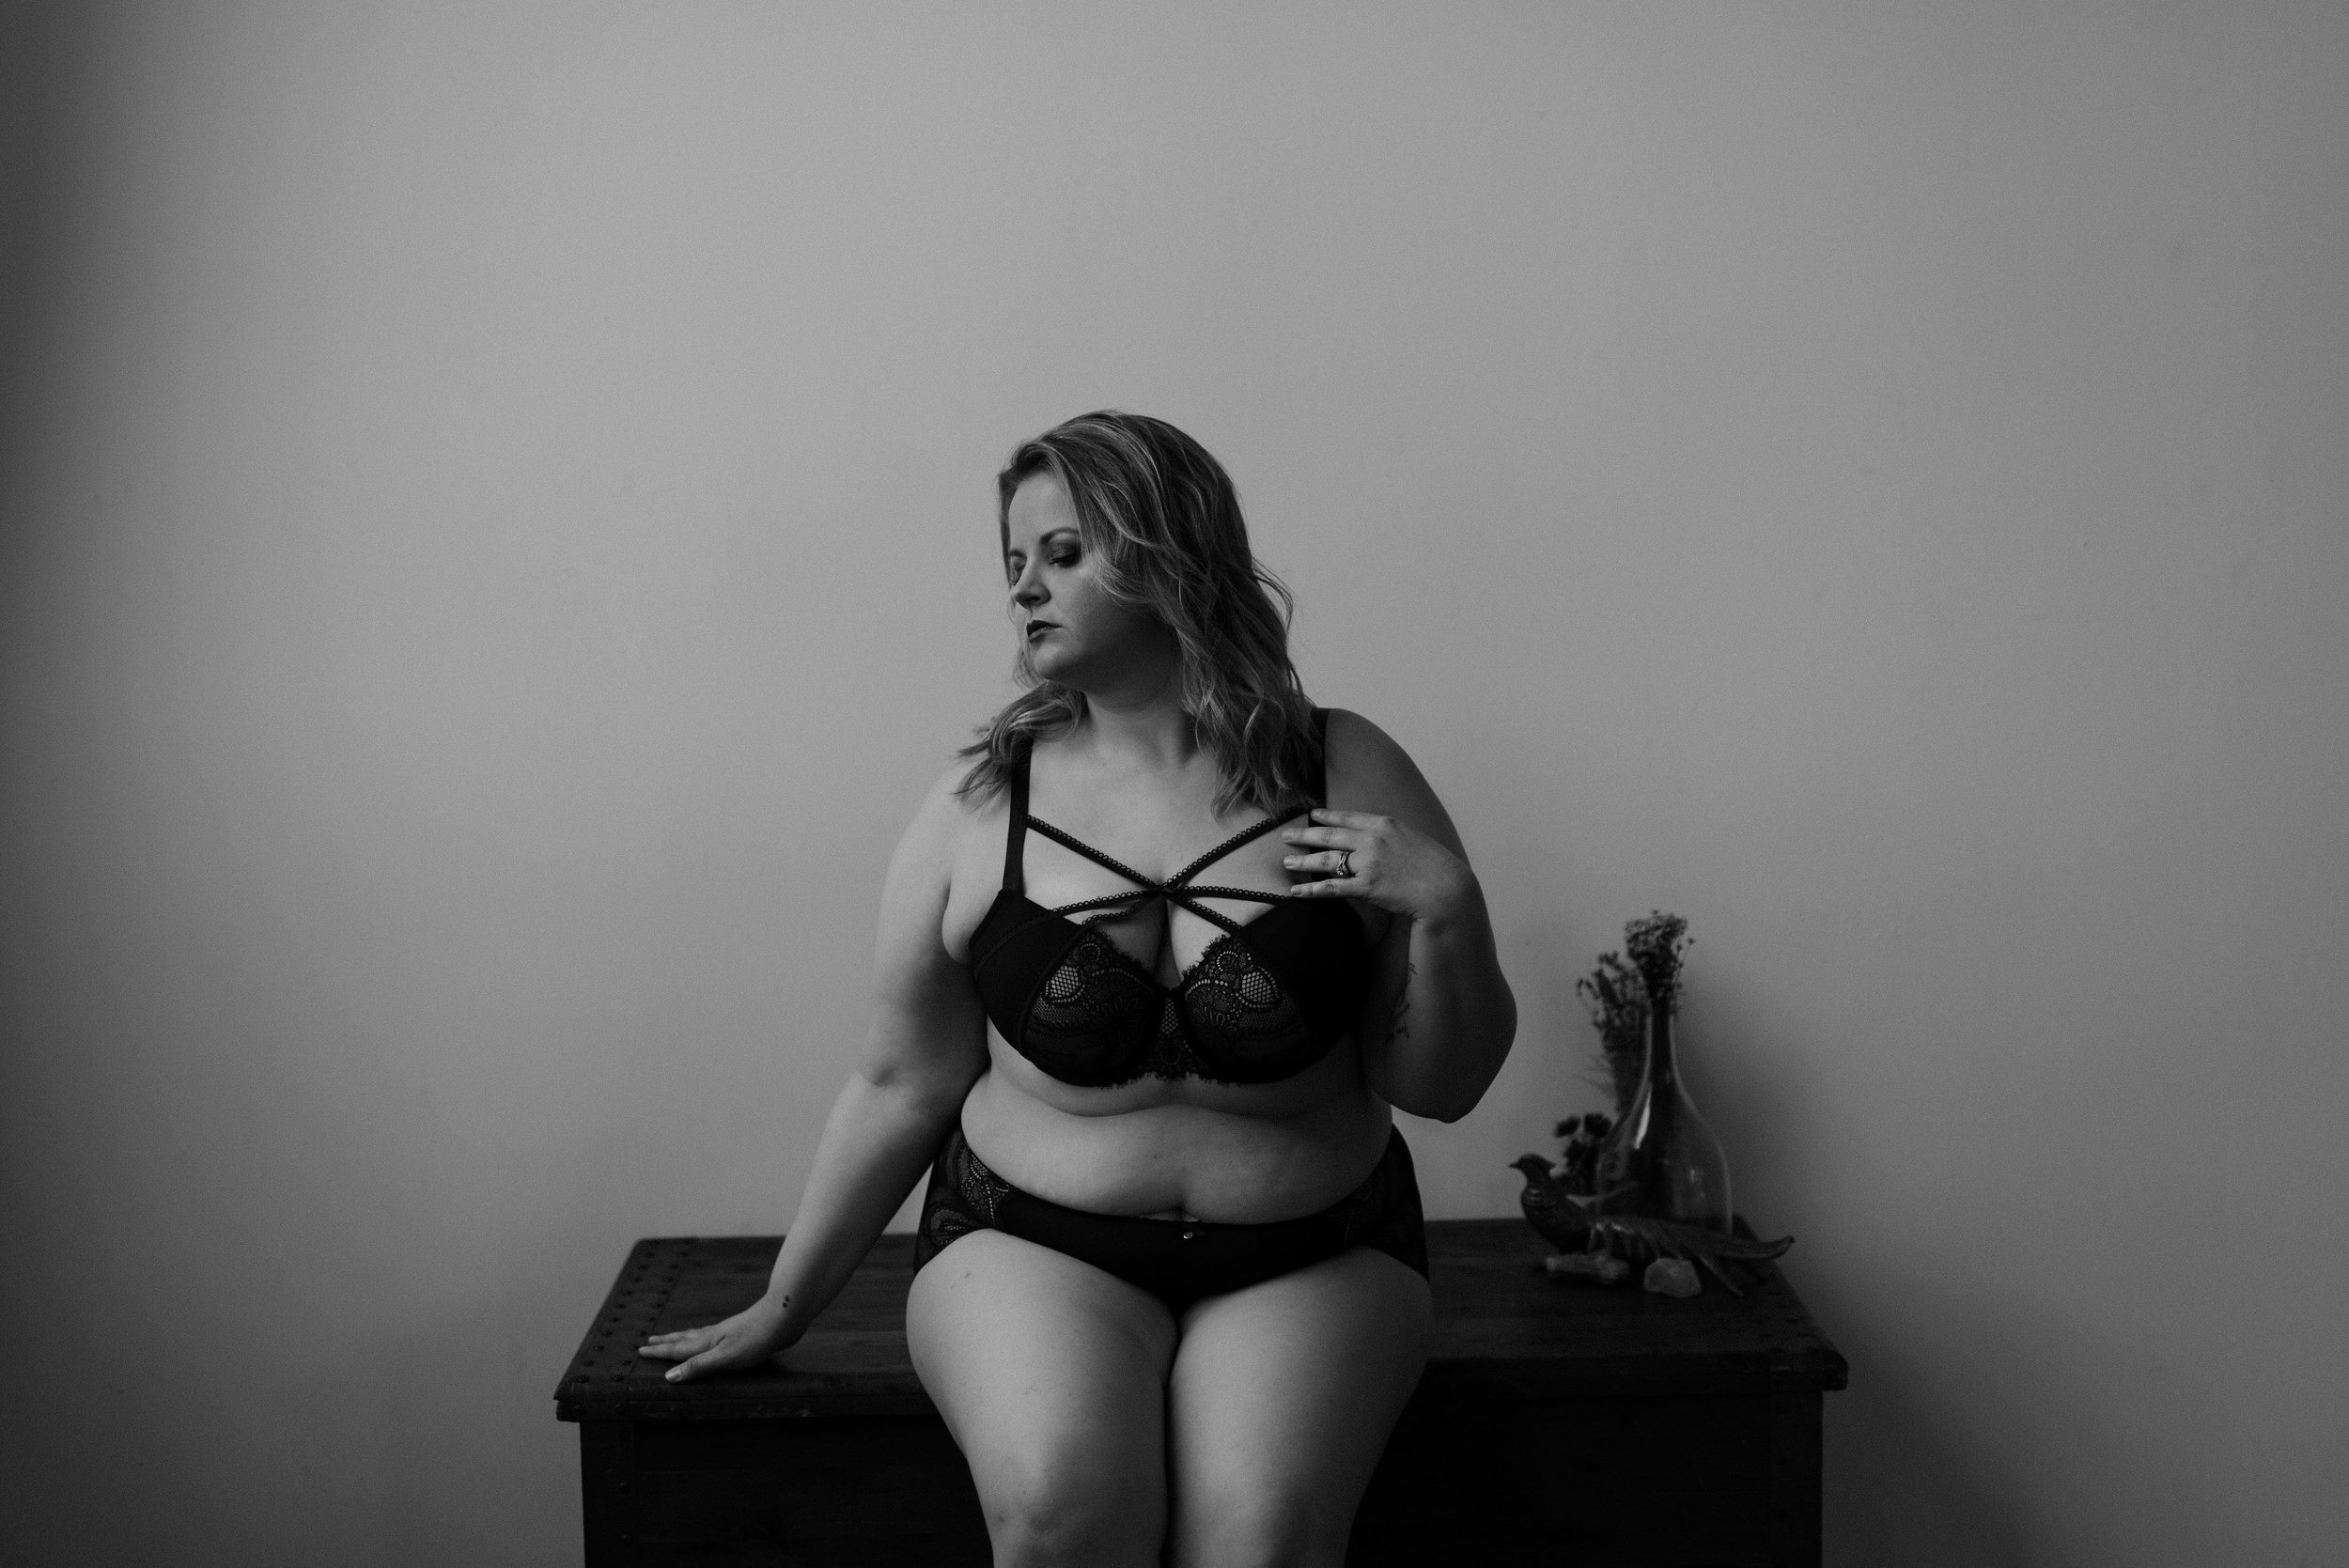 a lil about me - I started on my own self love journey in 2017. At 31 years old, I refused to spend the rest of my life hating my body and decided it was time to start loving my body and all it does for me. I always wanted to focus on shooting boudoir but now my mission is more than that. I want, more than anything, to make a difference. To change perceptions of beauty and show the world how damn magical women are. That's when I decided to focus on empowering women to love themselves and embrace their bodies. Like what you're about to do, I have been in front of the camera and bared it all. I know exactly what you're about to experience. I'll be there with you every step of the way. I'll remind you to breathe, we'll dance, and we'll most definitely laugh! I'll show you how to pose so no worries there! ANY BODY CAN DO THESE SESSIONS. I will be your own personal hype woman! You'll probably hear me yell out YAAAAS at least a few times. Be prepared to be loved on. YOU GOT THIS!!